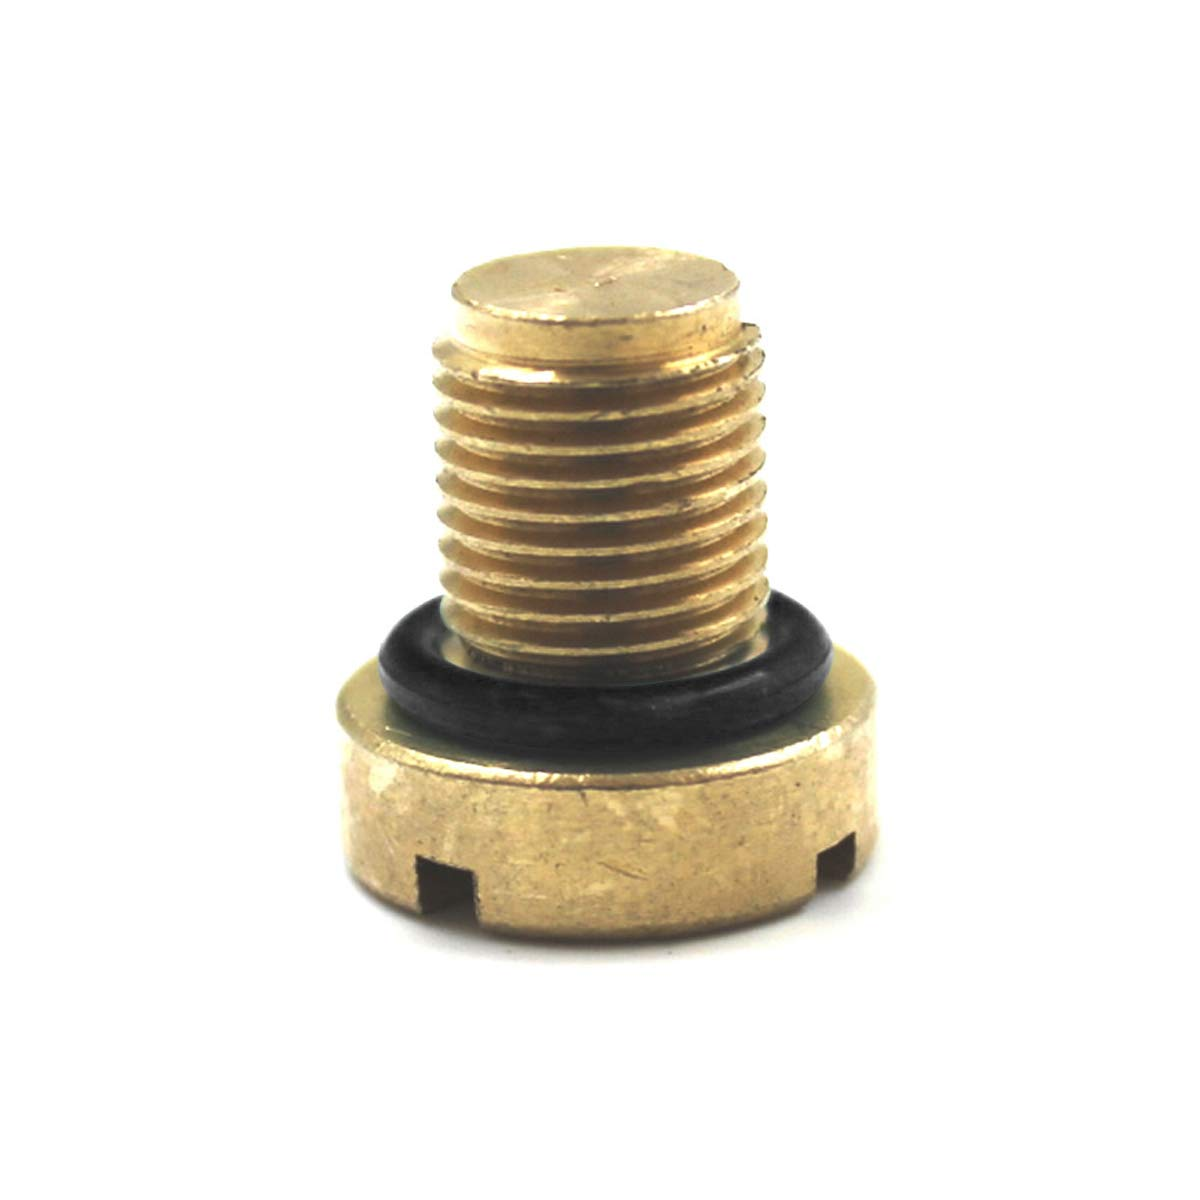 DEALPEAK Car Reservoir Screw Replacement Coolant Tank Bleeder Screws Brass for Auto E46 E92 E90 E36 E39